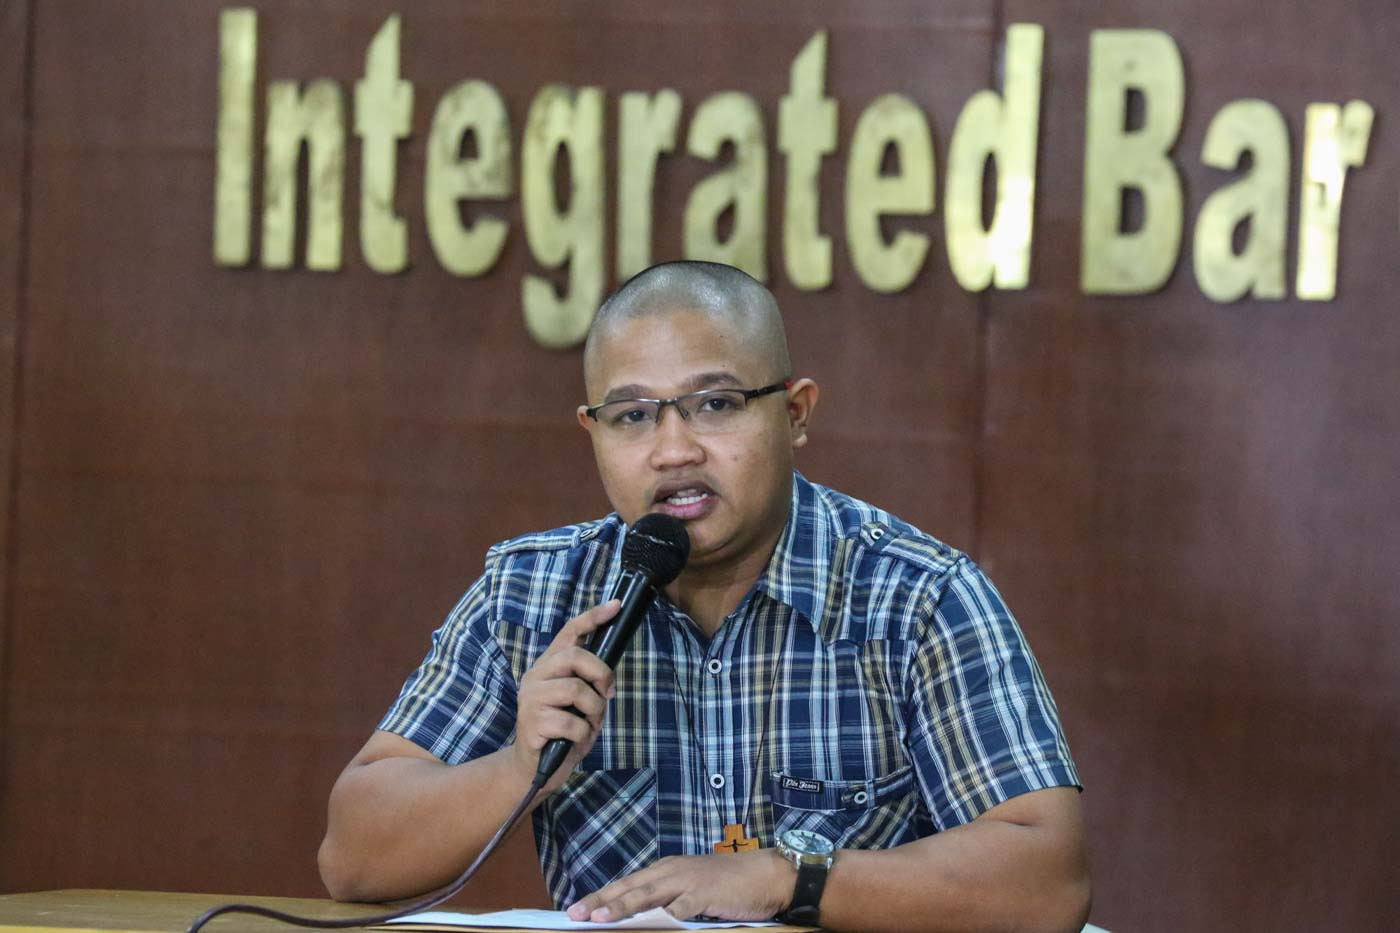 SURFACE. Peter Joemel Advincula reveals himself as Bikoy, the hooded man behind the controversial videos linking the President Duterte's family to drug links. Photo by Jire Carreon/Rappler